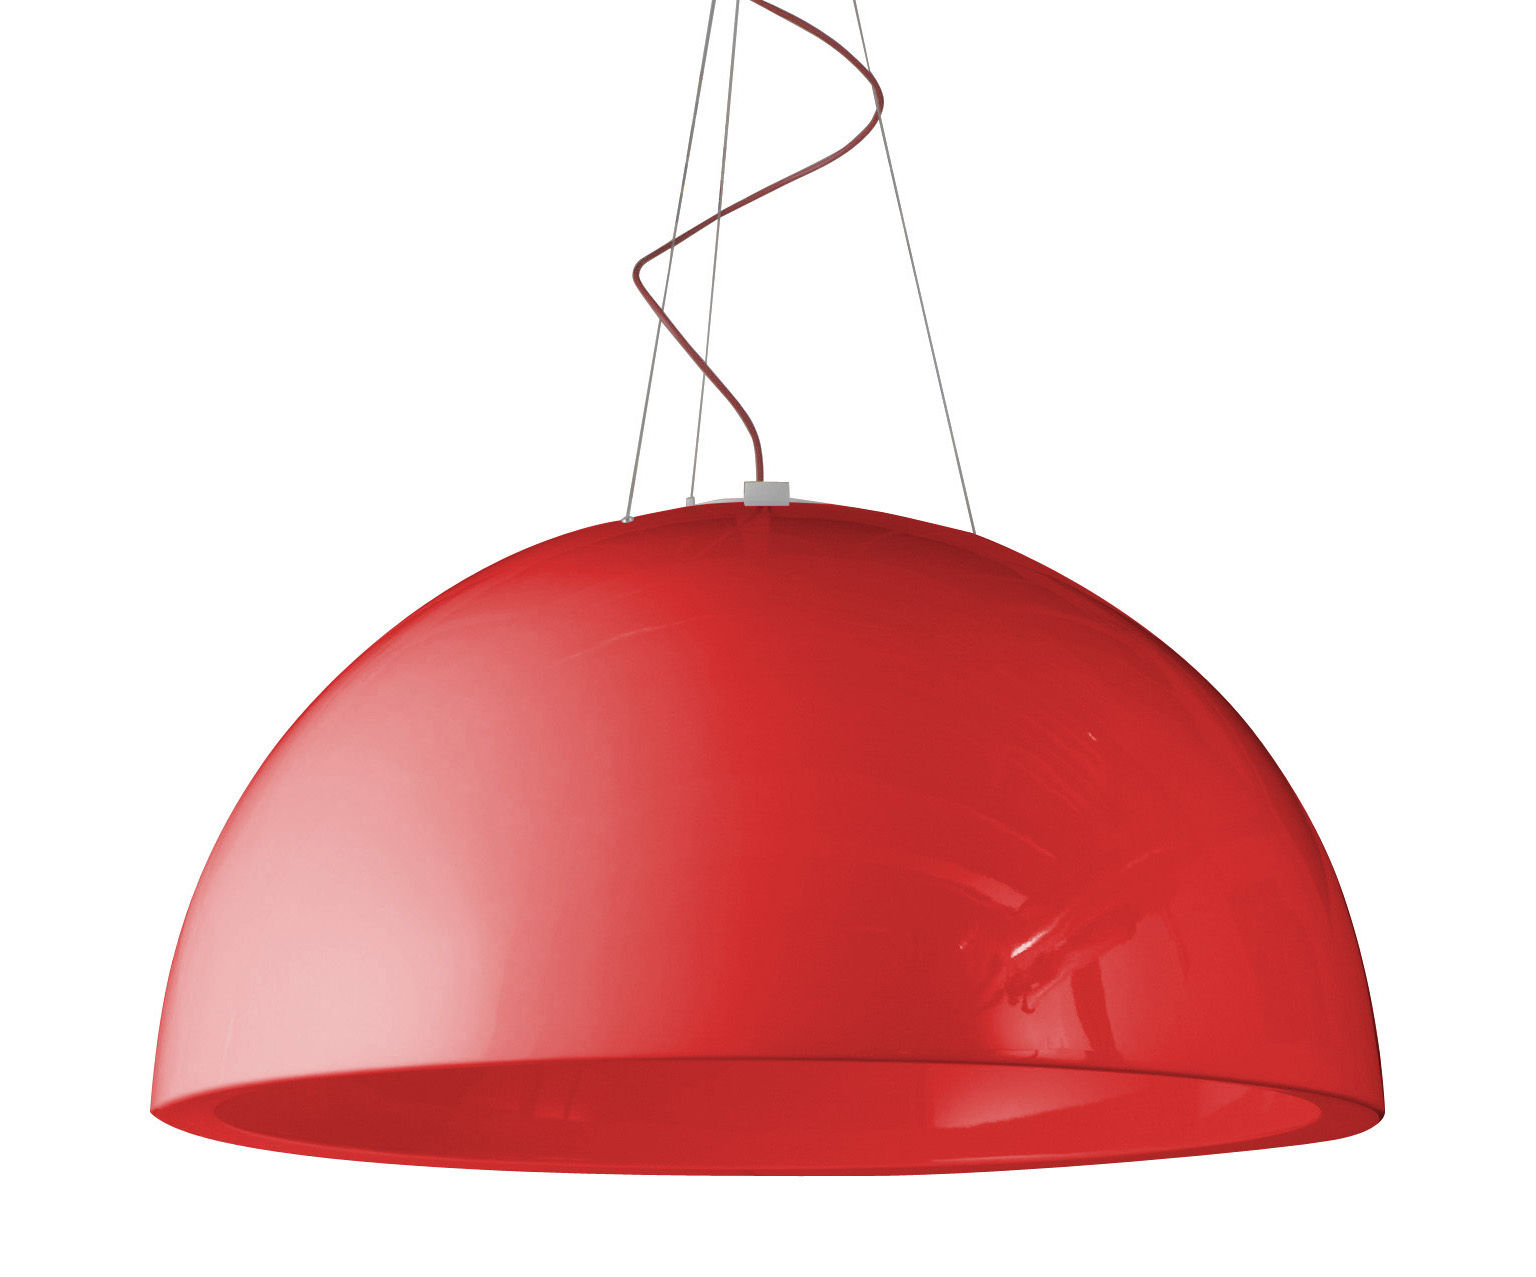 Lighting - Pendant Lighting - Cupole Pendant - Lacquered version - Ø 120 cm - LED by Slide - Lacquered red - recyclable polyethylene